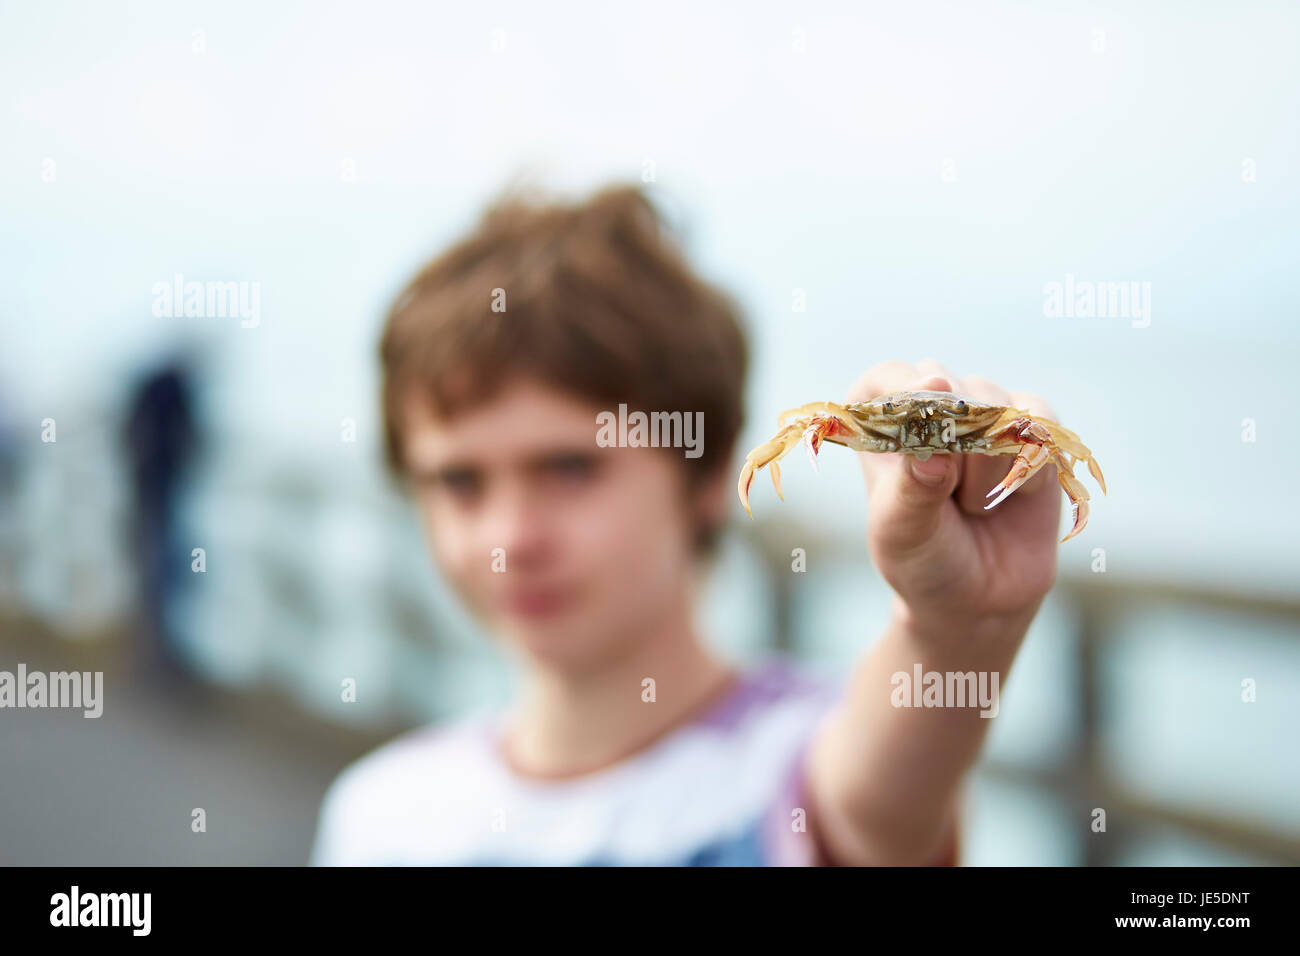 Garçon (11) holding out un crabe Photo Stock